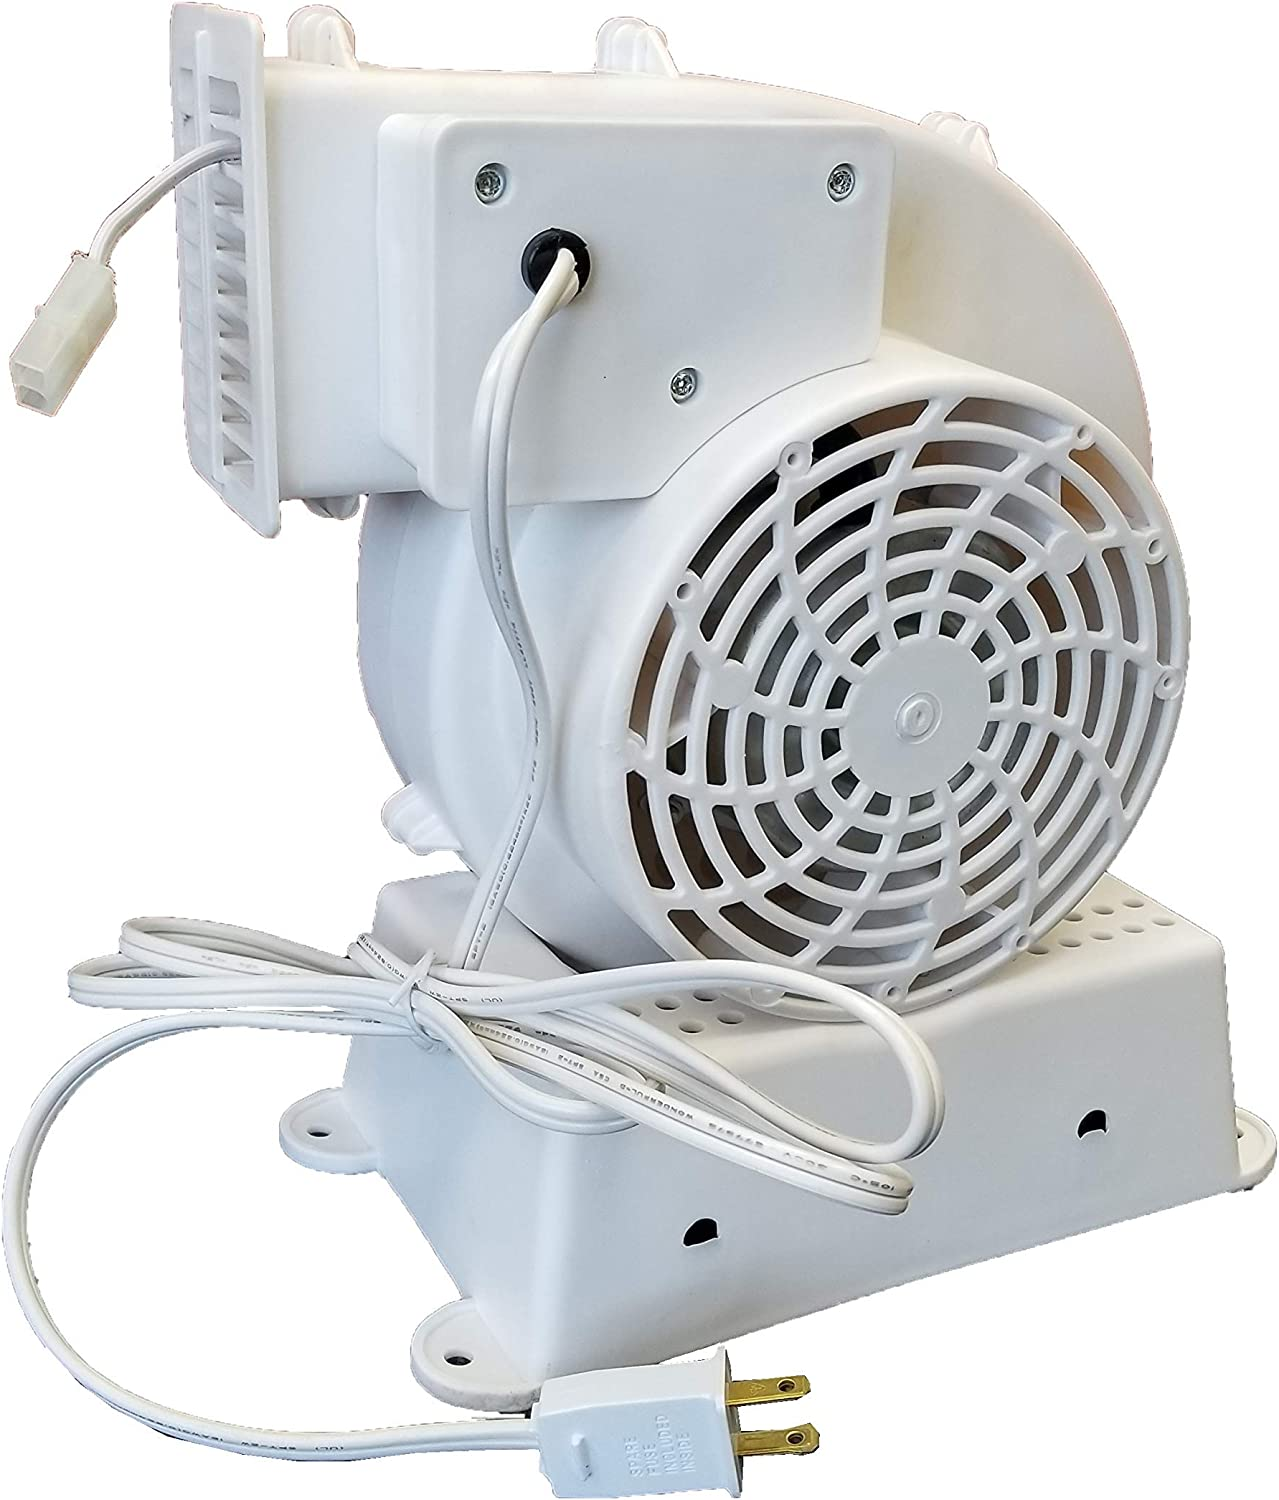 Replacement Yard Inflatable Blower Motor Price reduction Fan Pump Max 49% OFF Lig 1 with Air